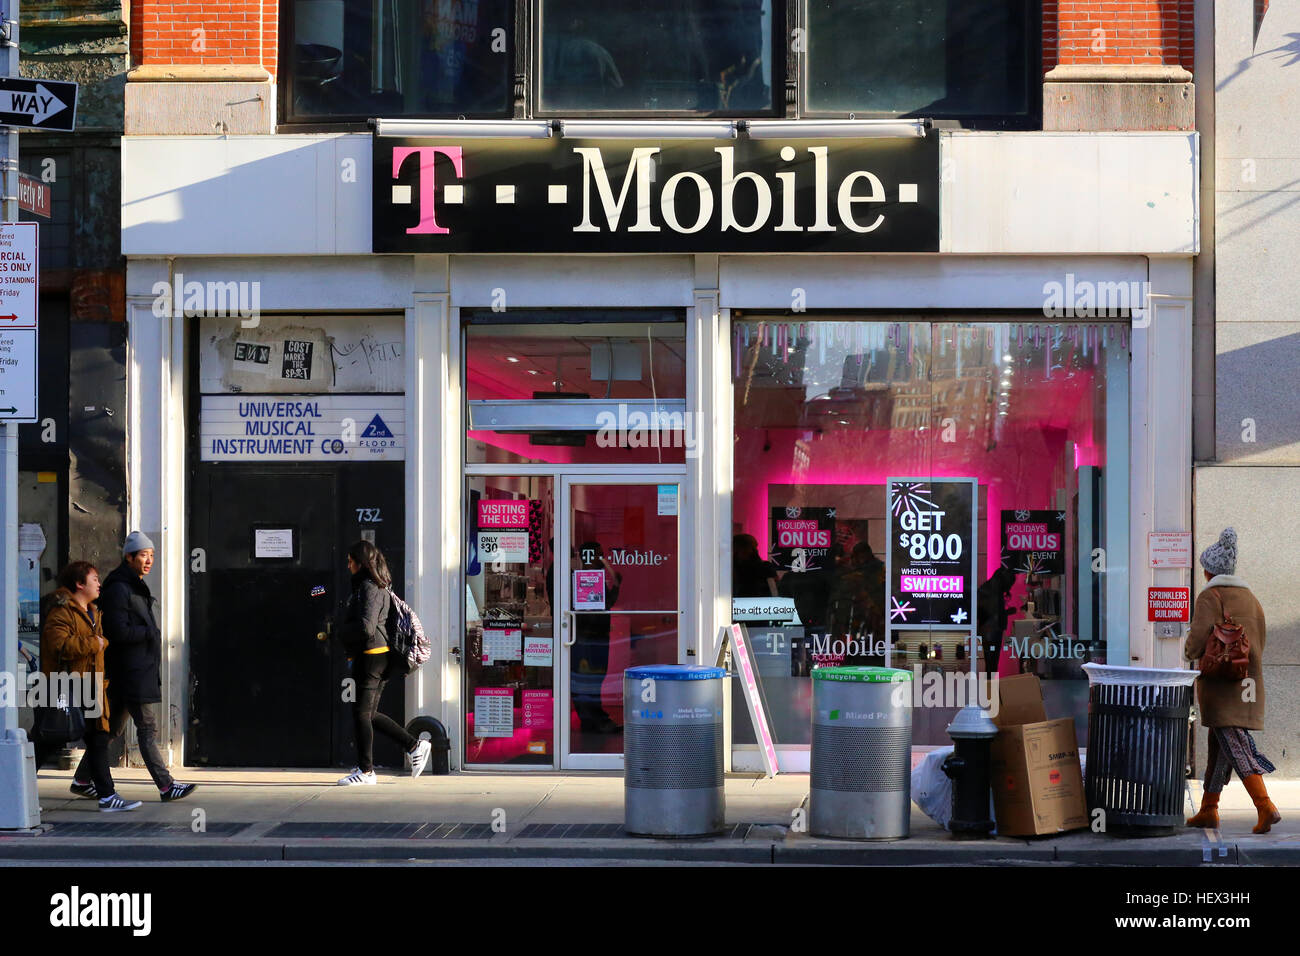 T Mobile 732 Broadway New York Ny Exterior Storefront Of A